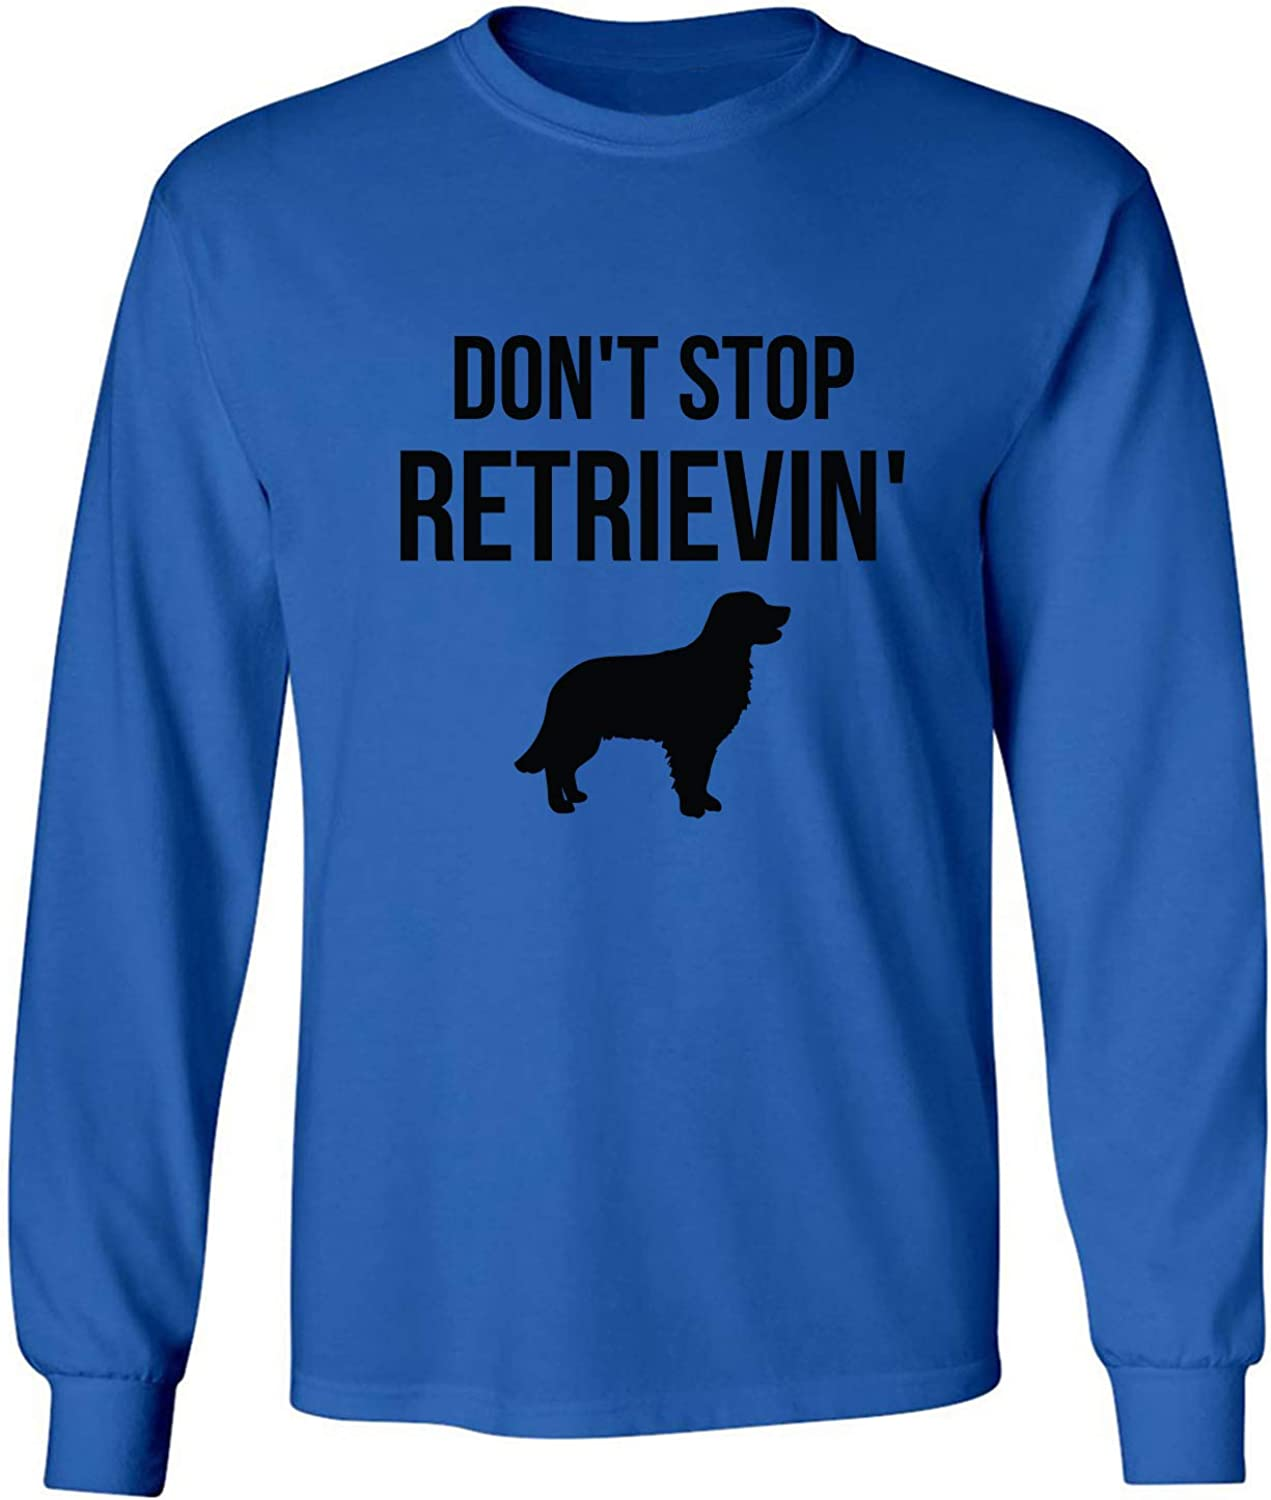 Don't Stop Retrievin' Adult Long Sleeve T-Shirt in Royal - XXXX-Large